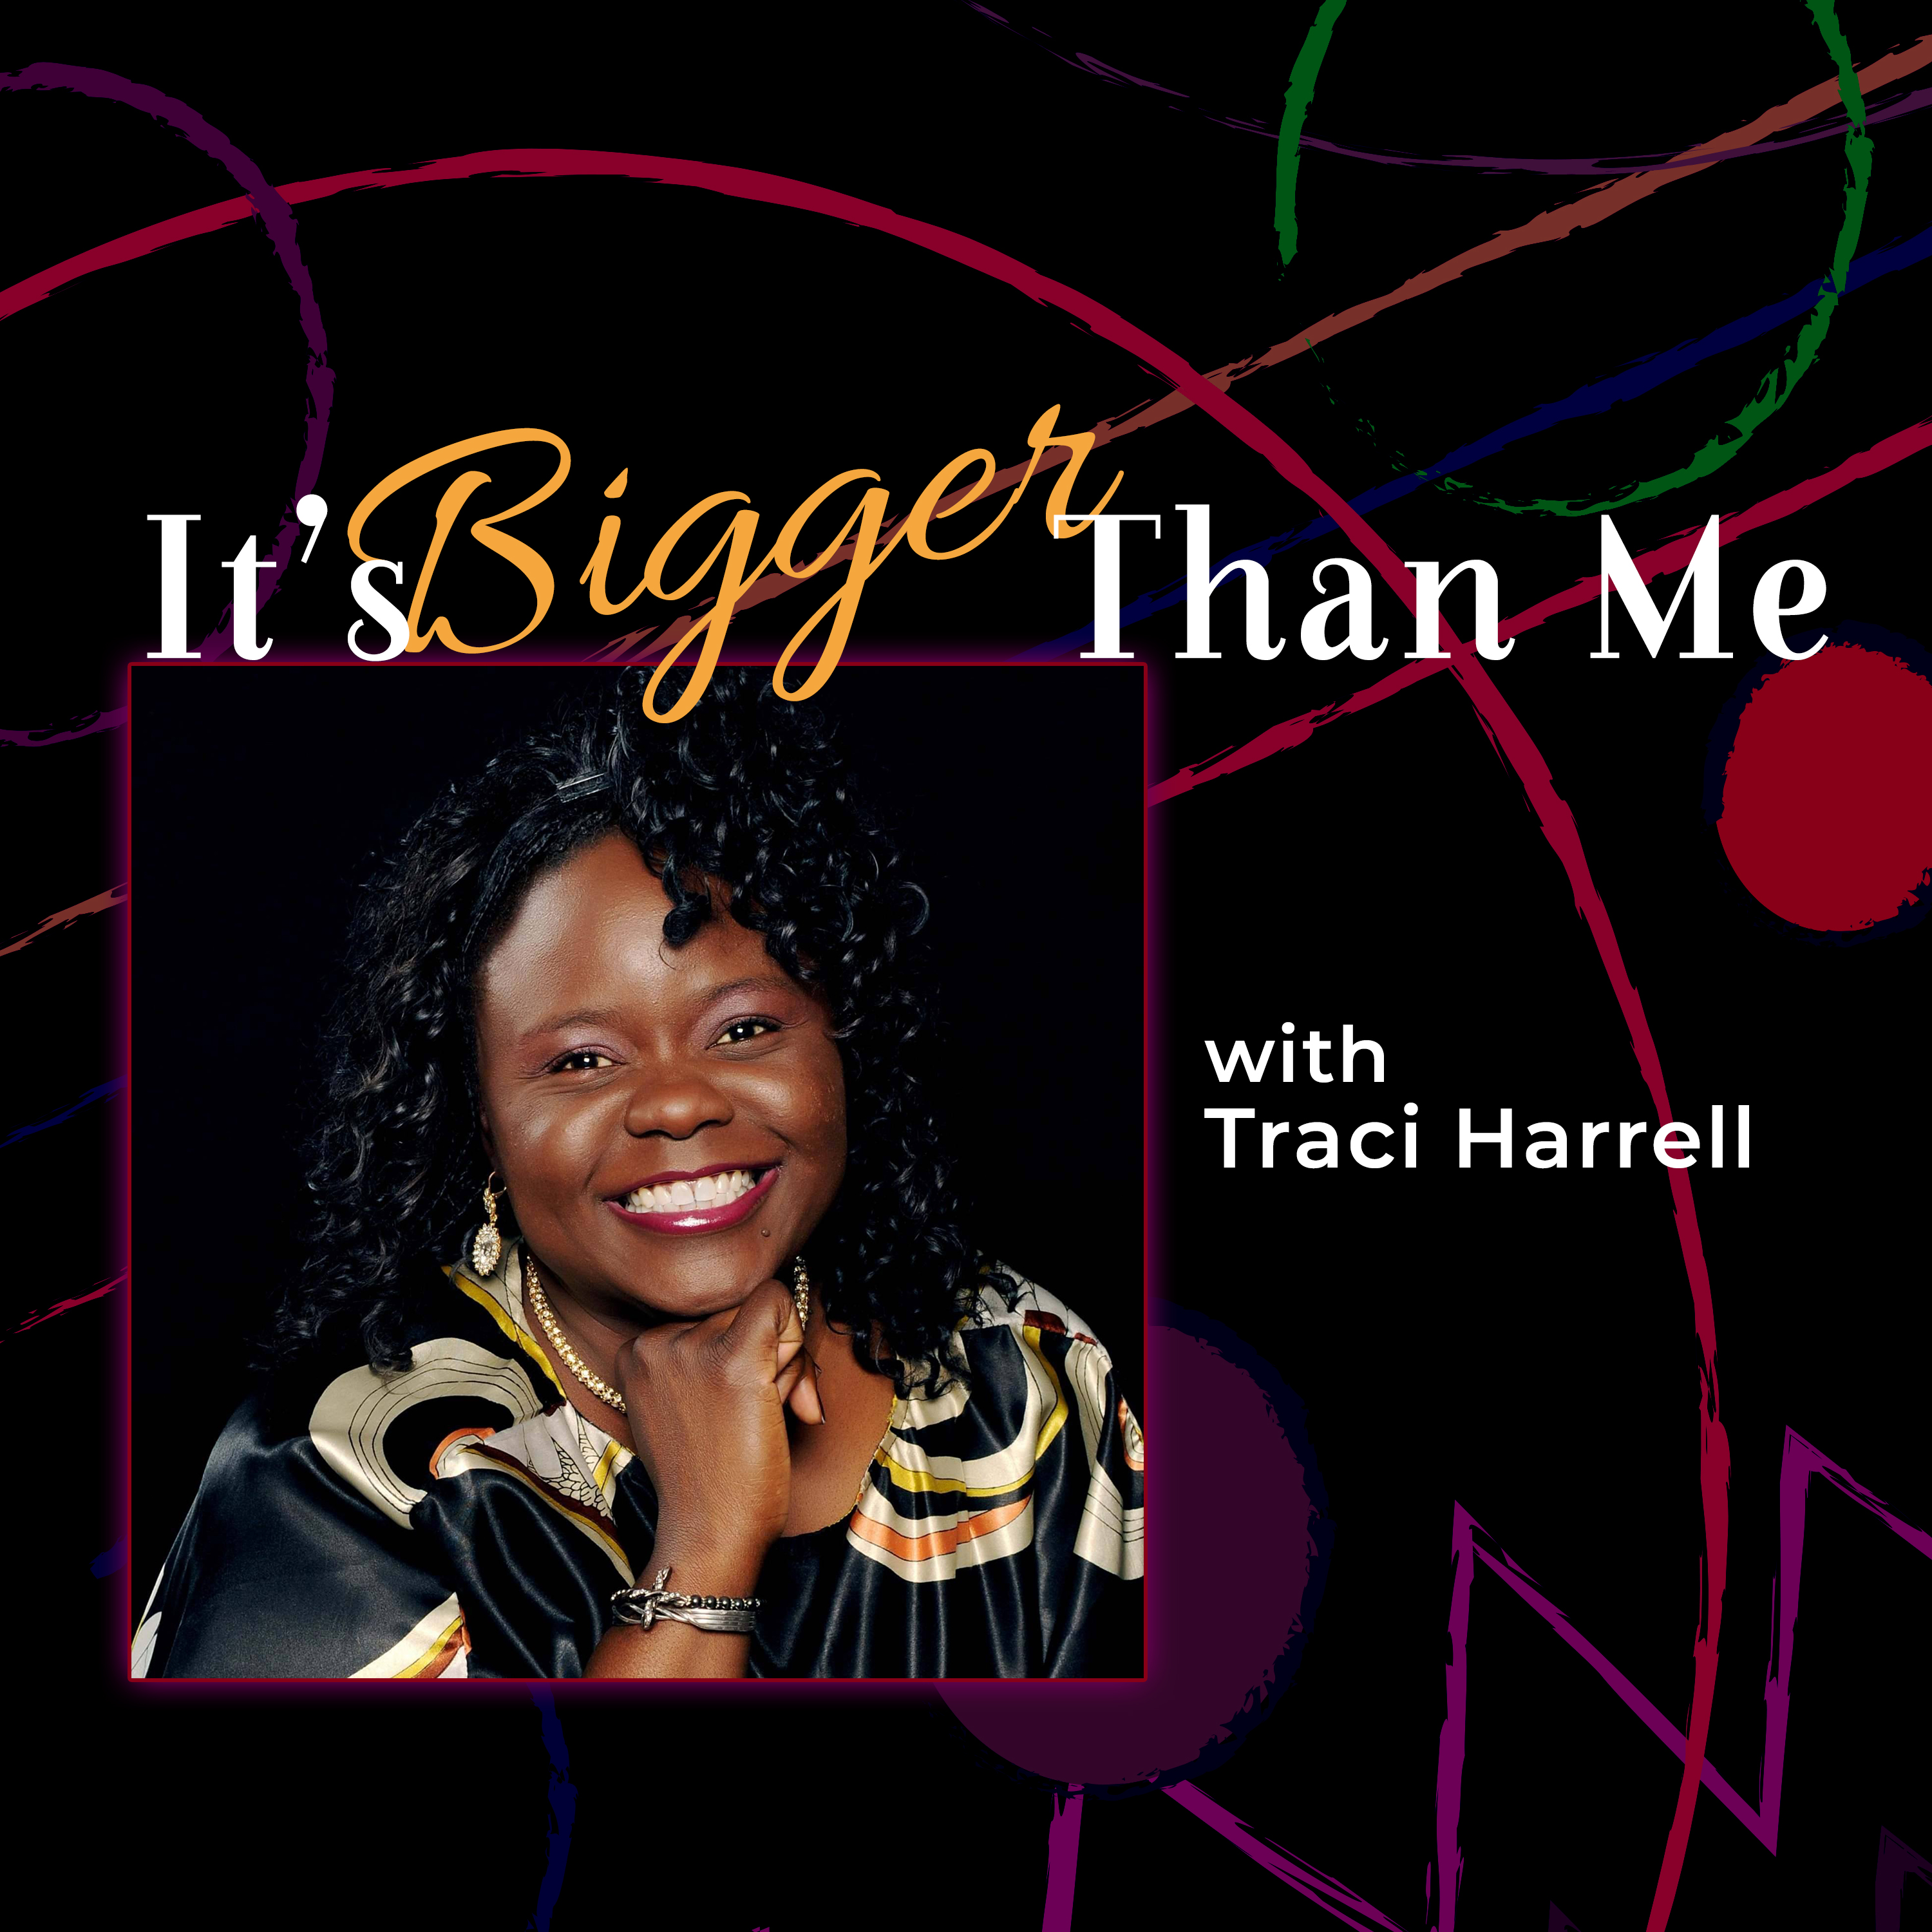 It?s Bigger Than Me, with Traci Harrell